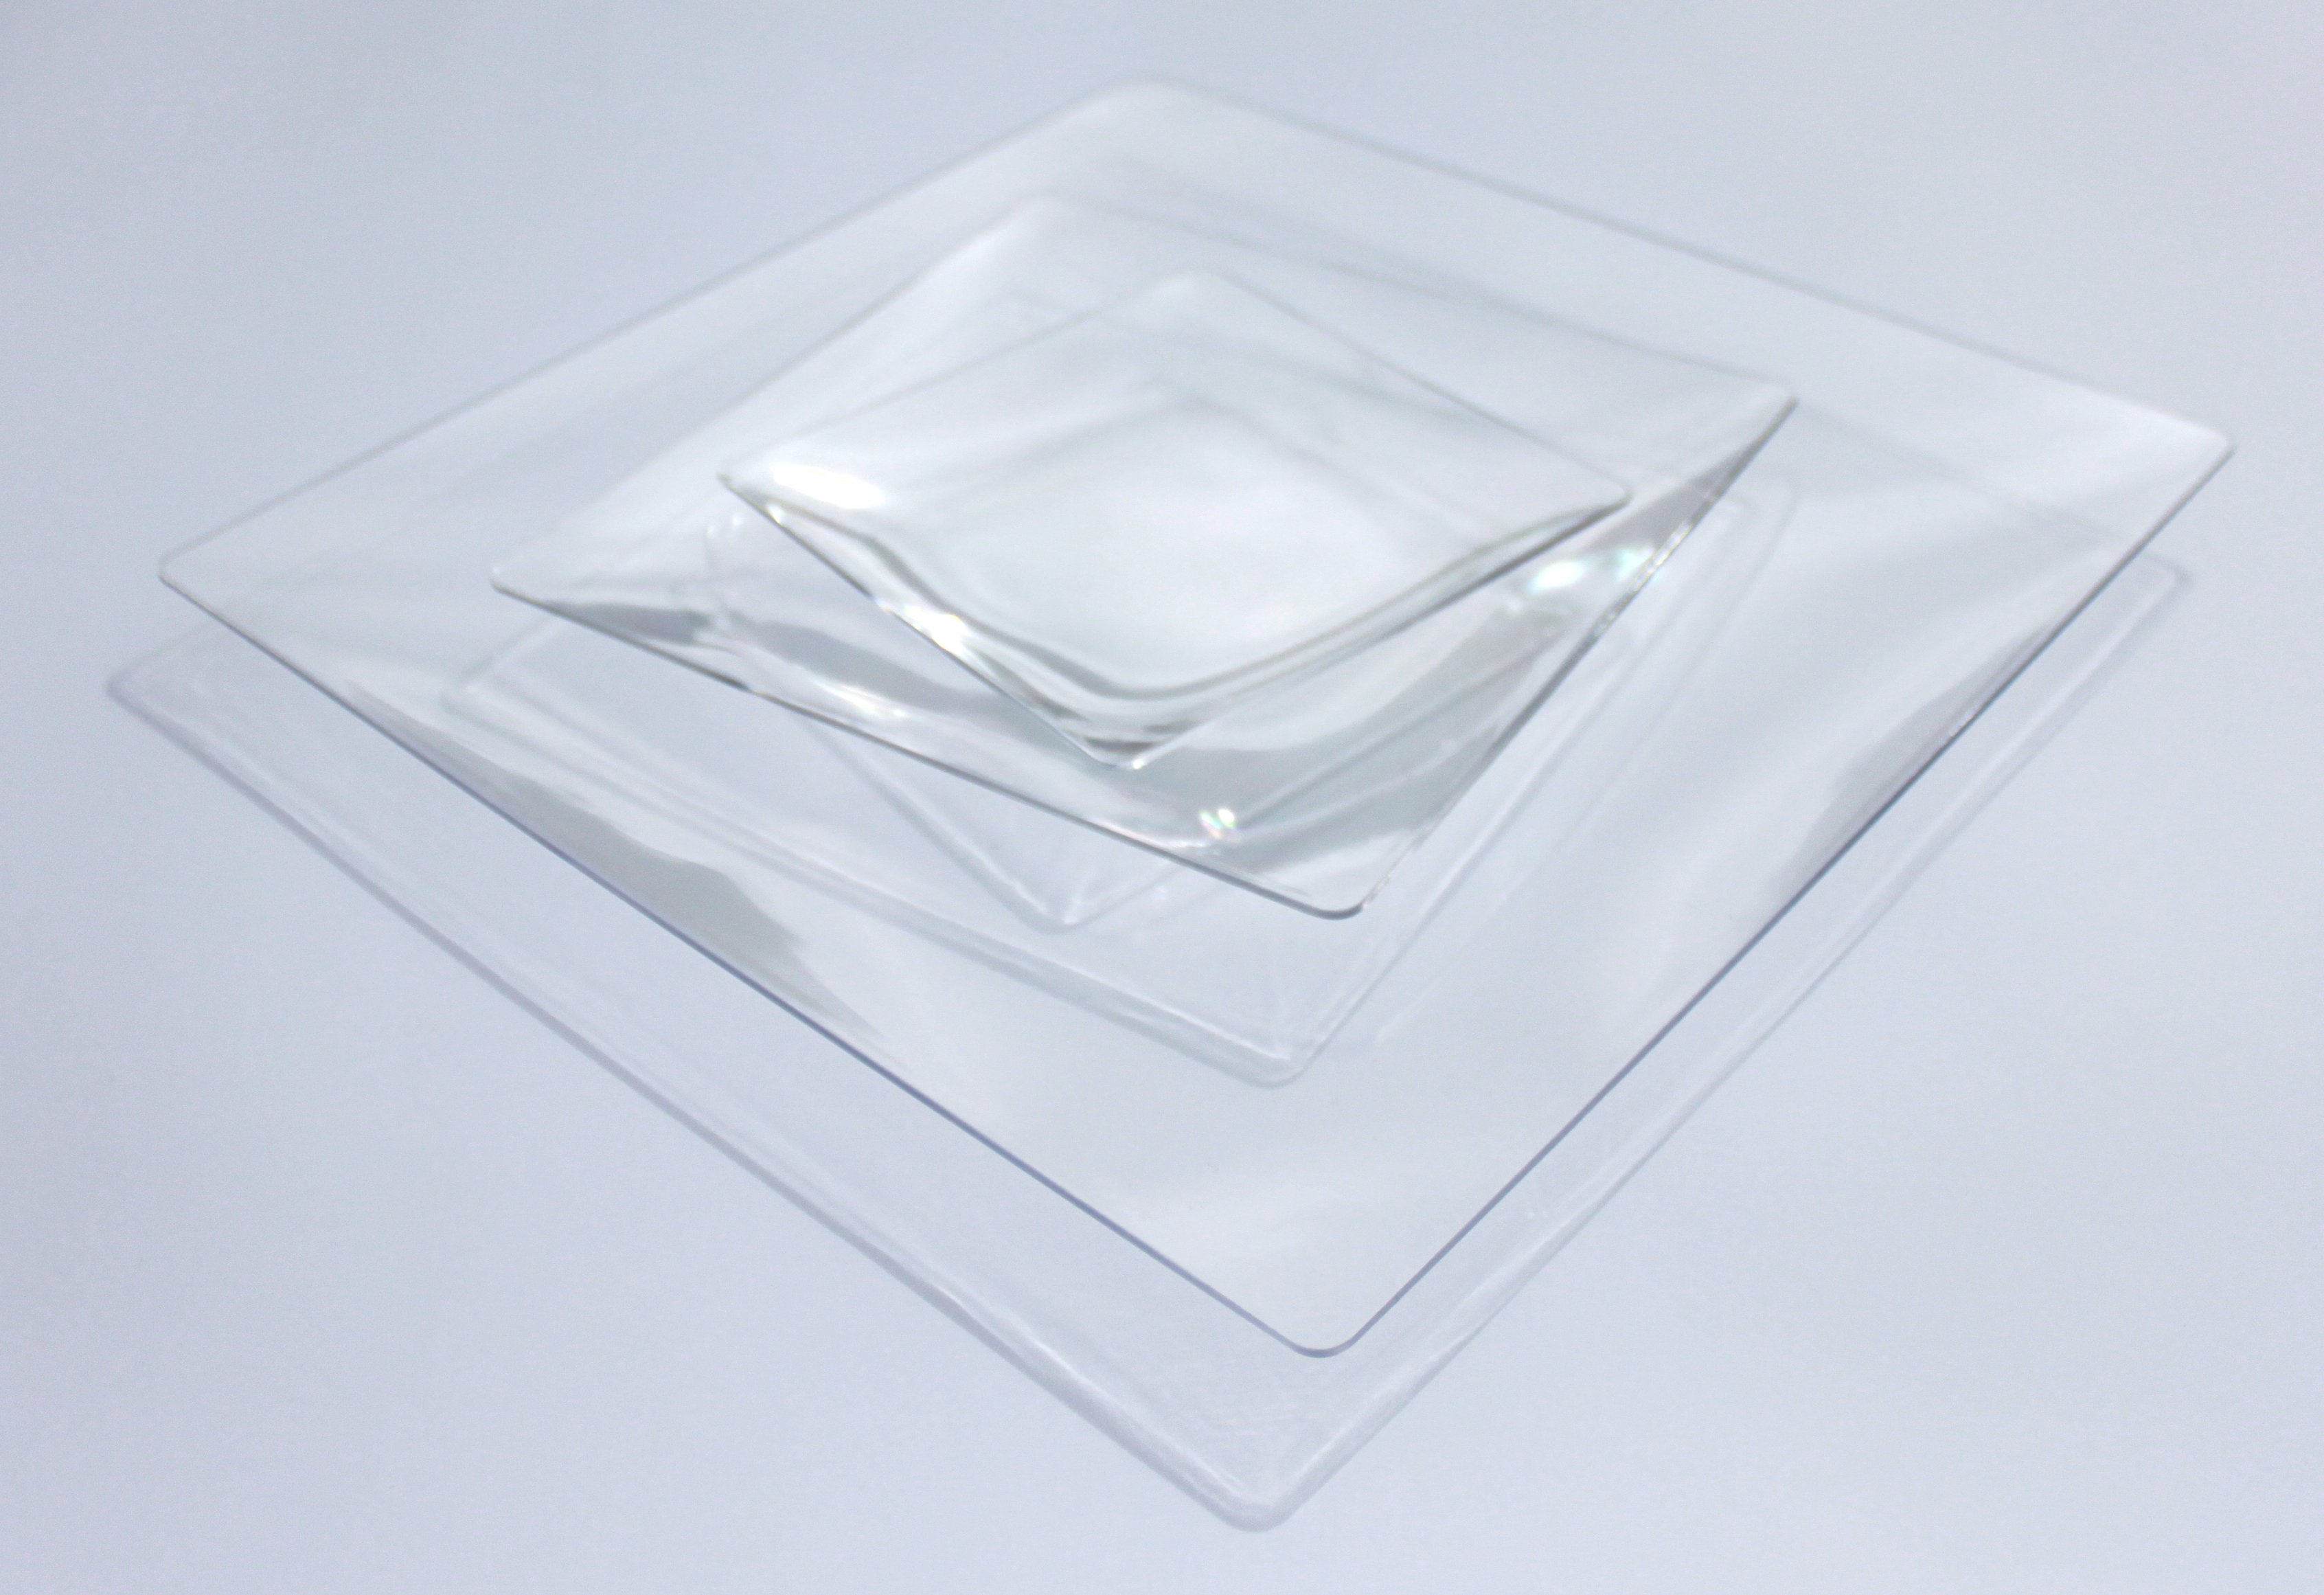 assiette plate carree transparente